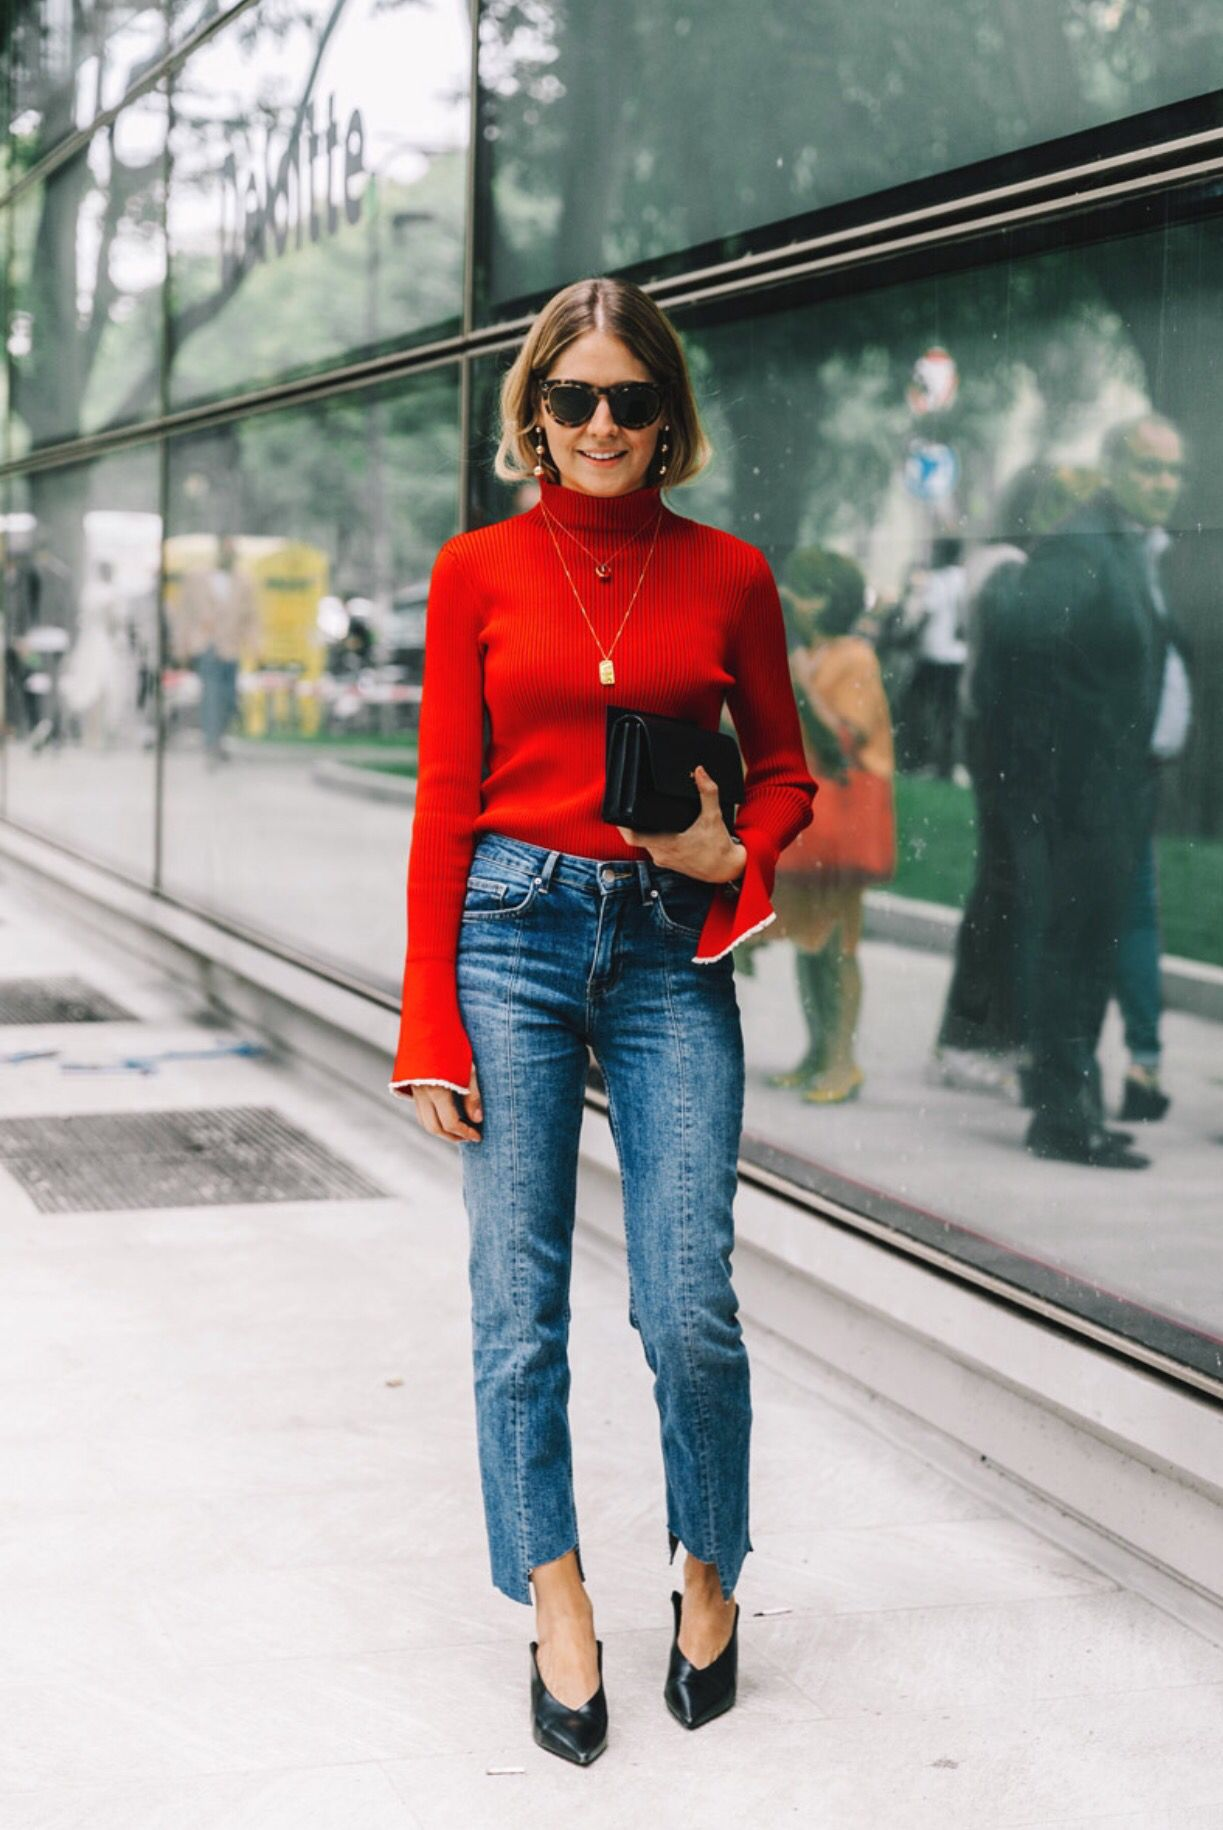 Red Turtleneck Modestil Outfit Outfit Ideen